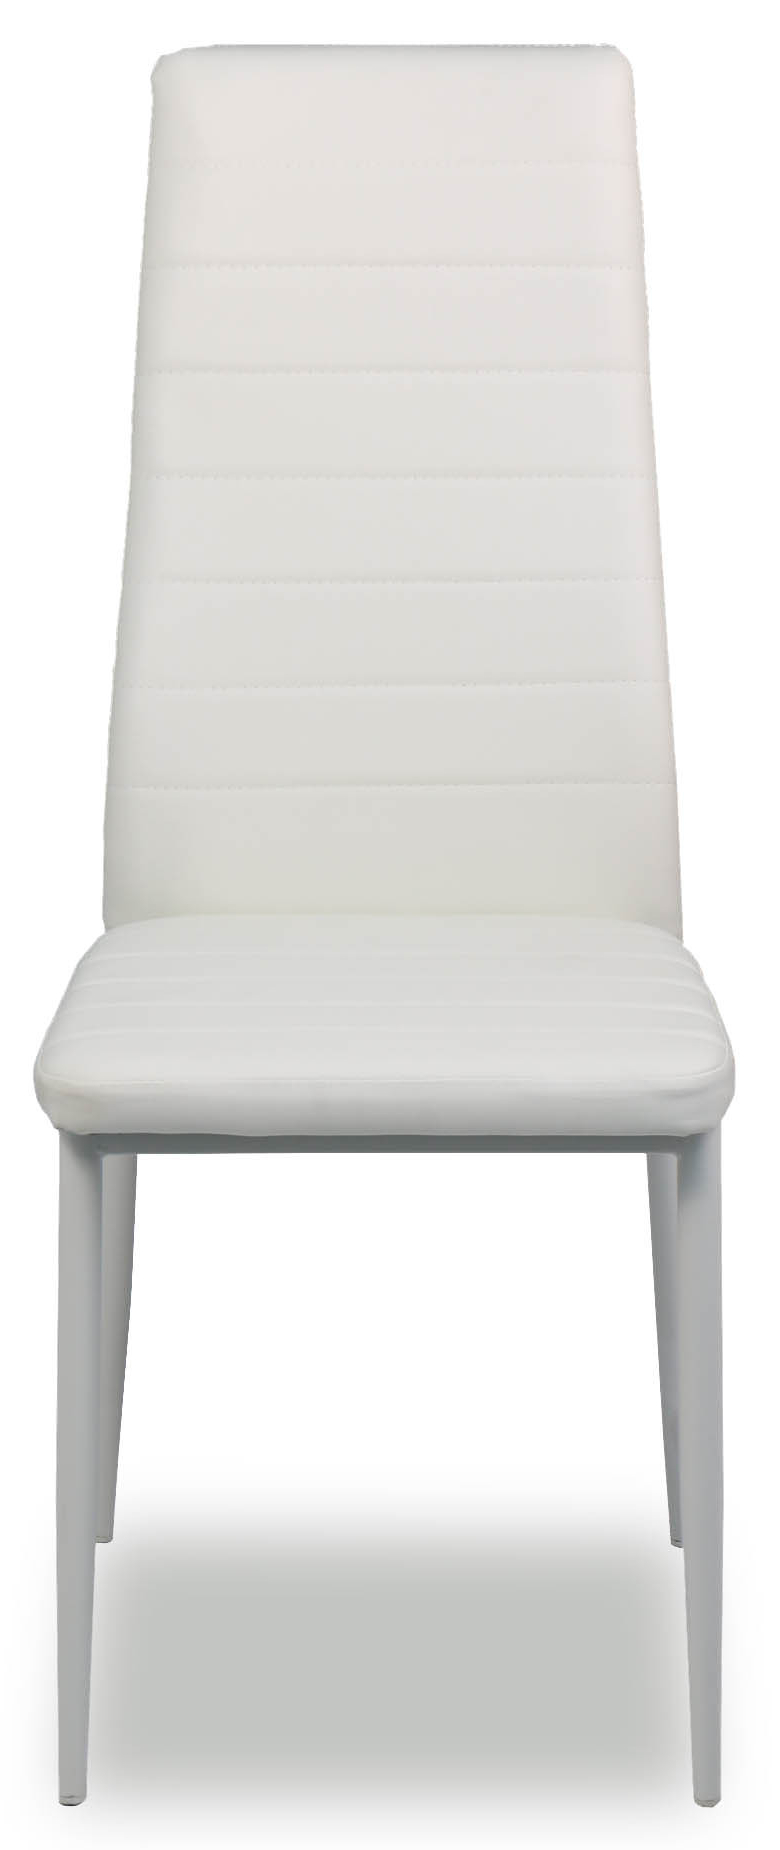 Quinn Dining Chair White (View 3 of 20)